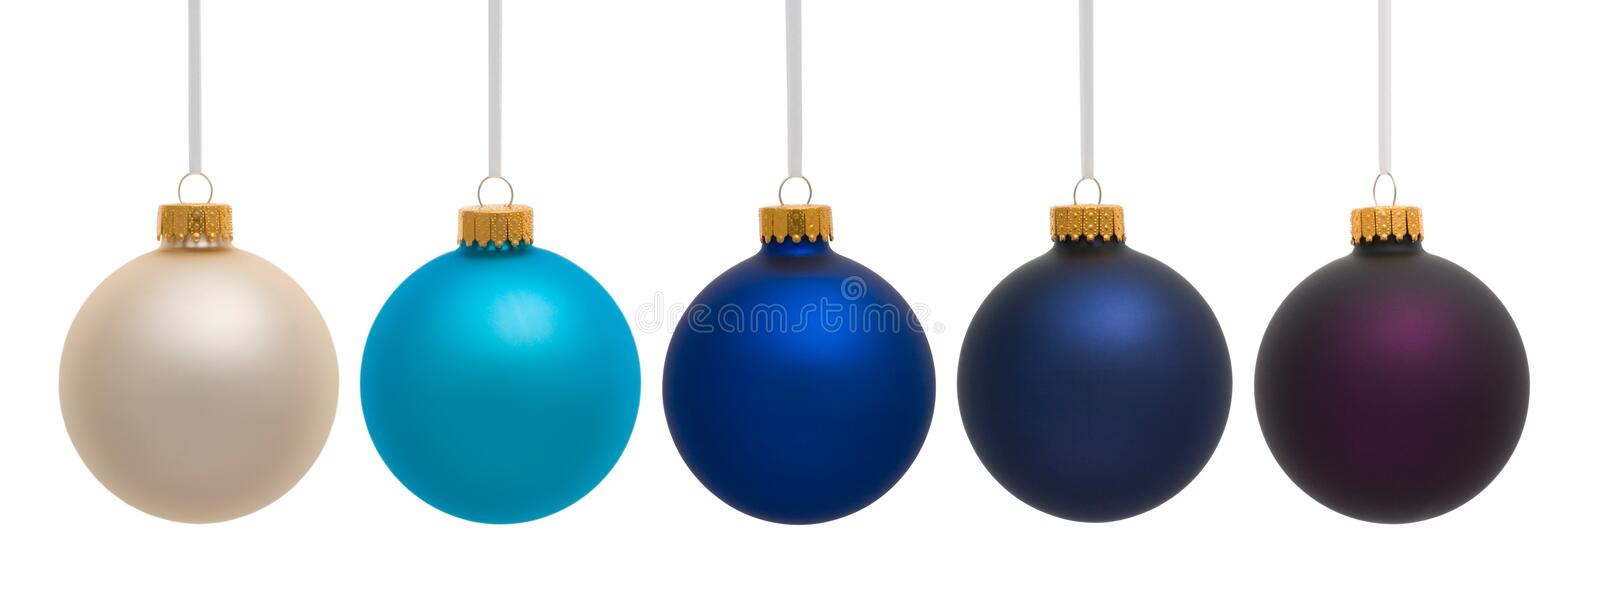 Bleu et ornements blancs de Pueple Chirstmas images libres de droits